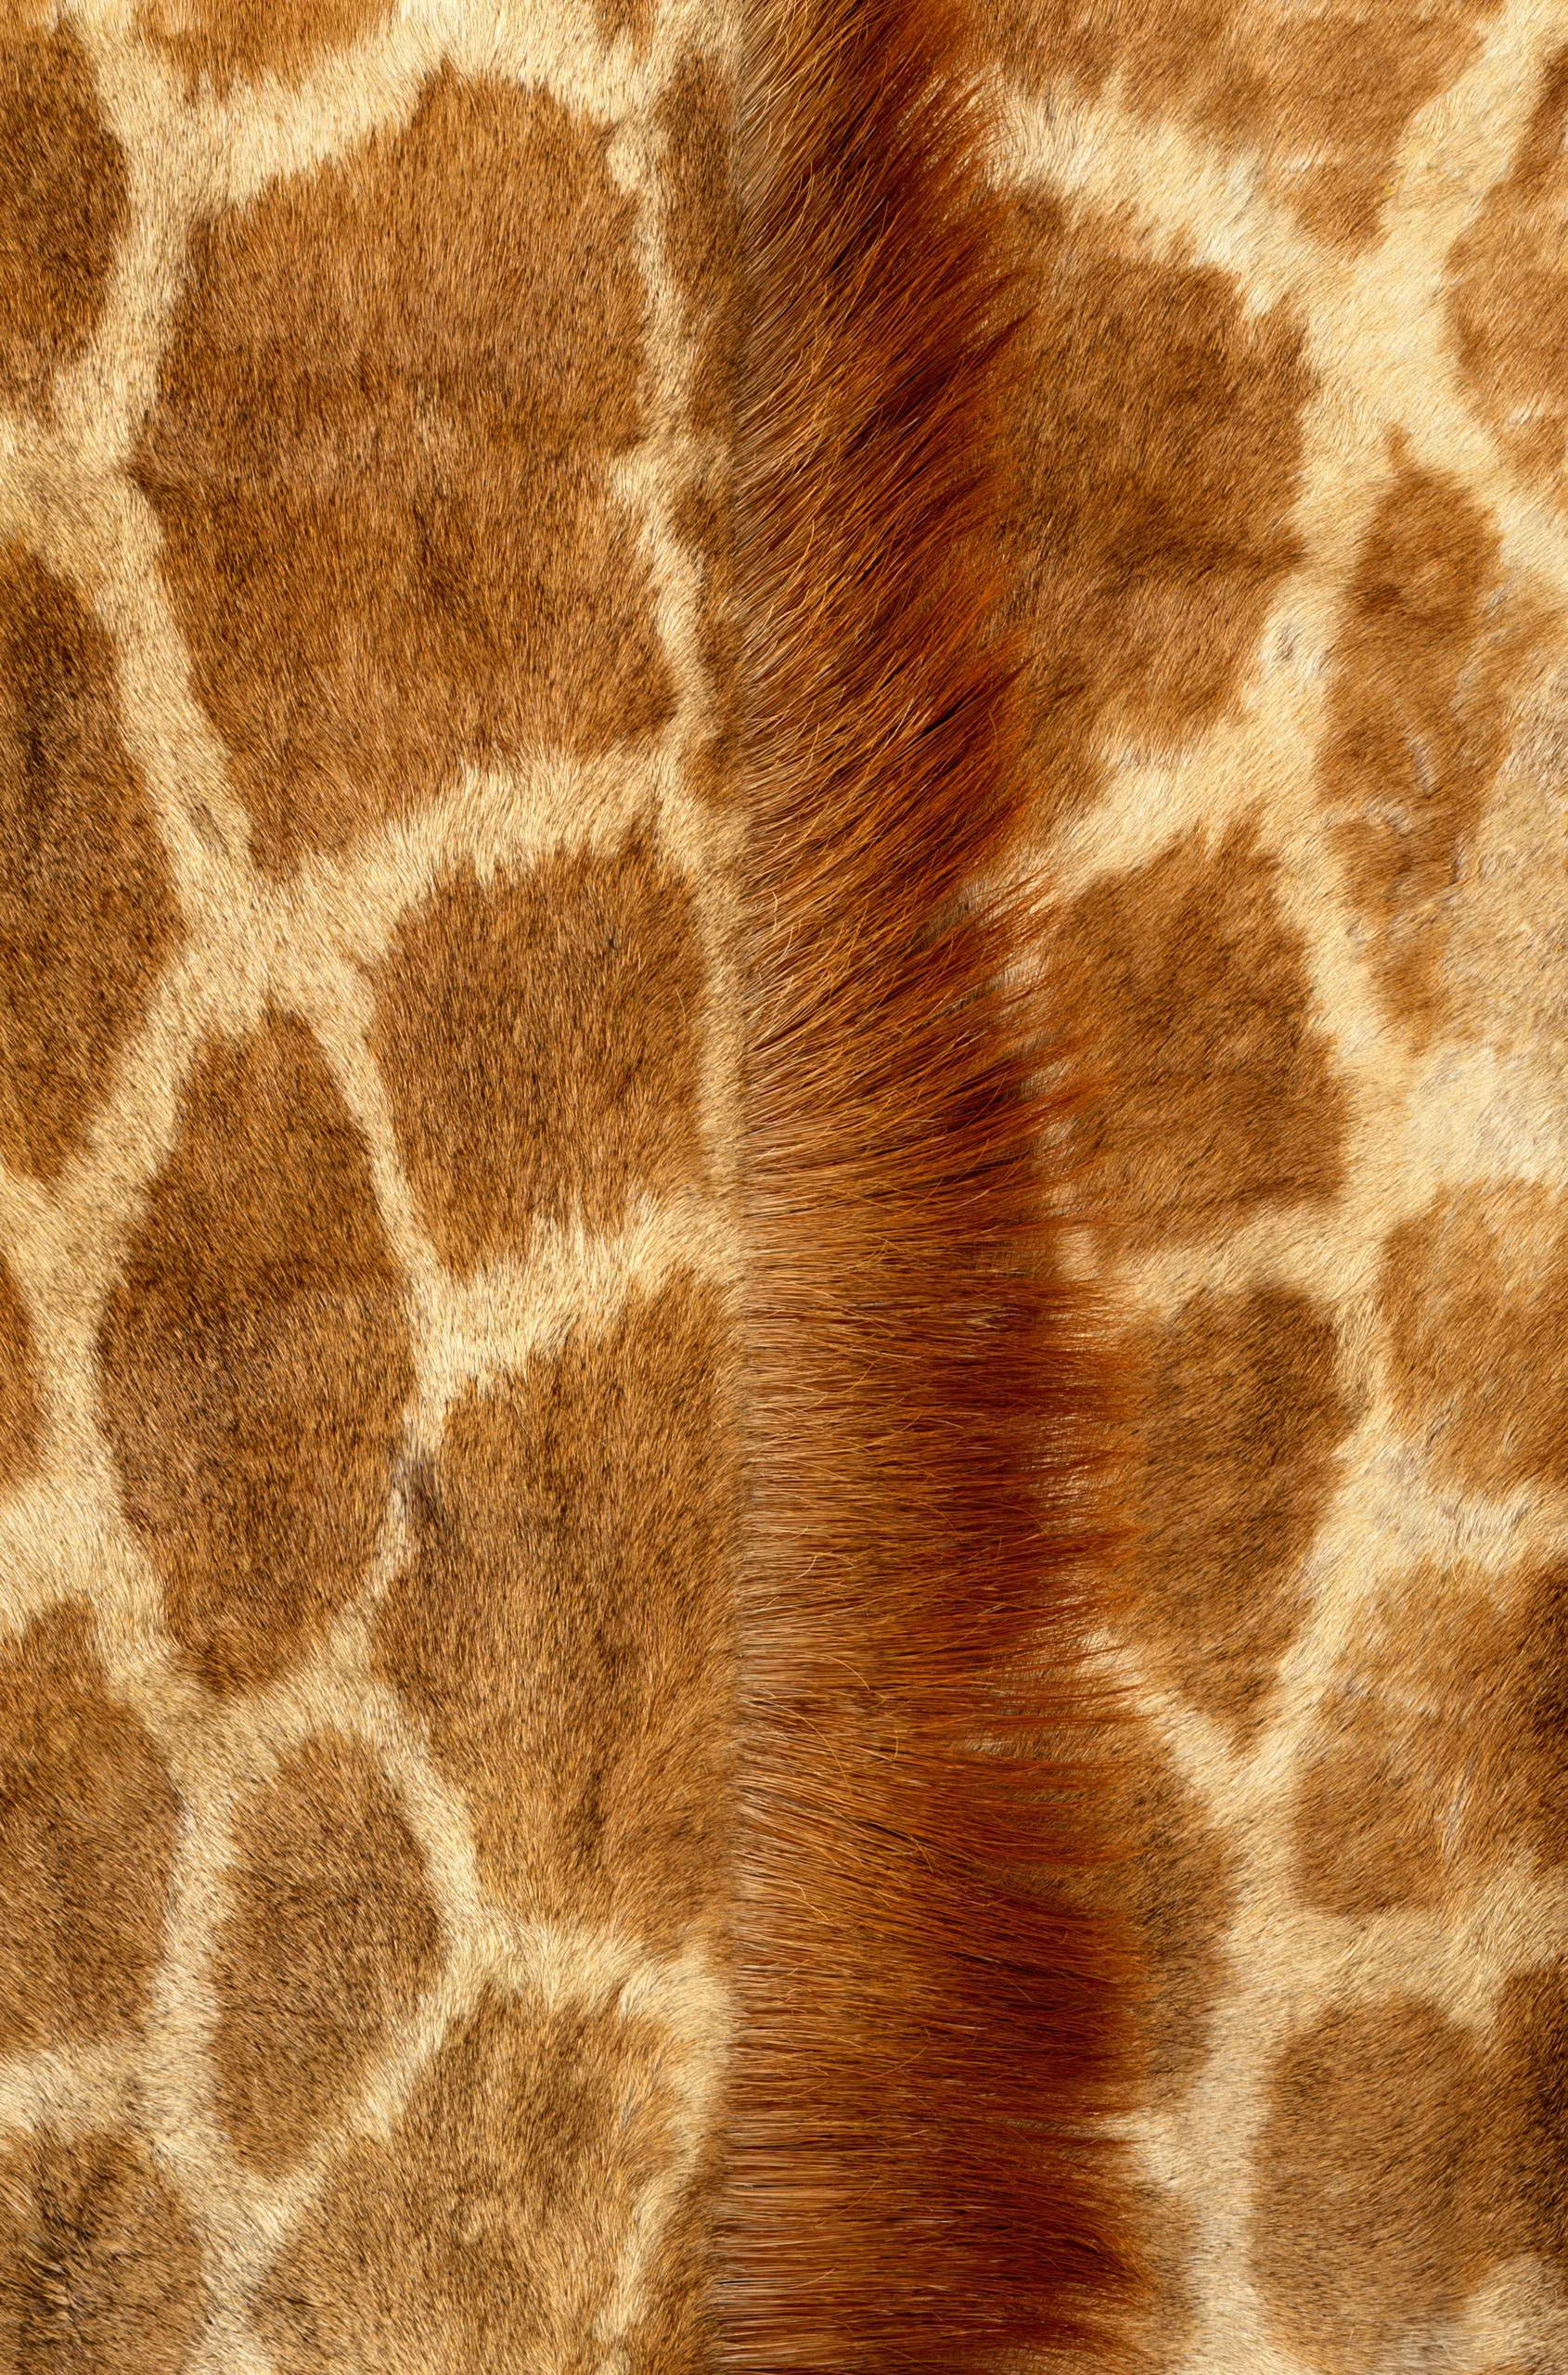 , skin giraffe, texture fur, fur texture background, background